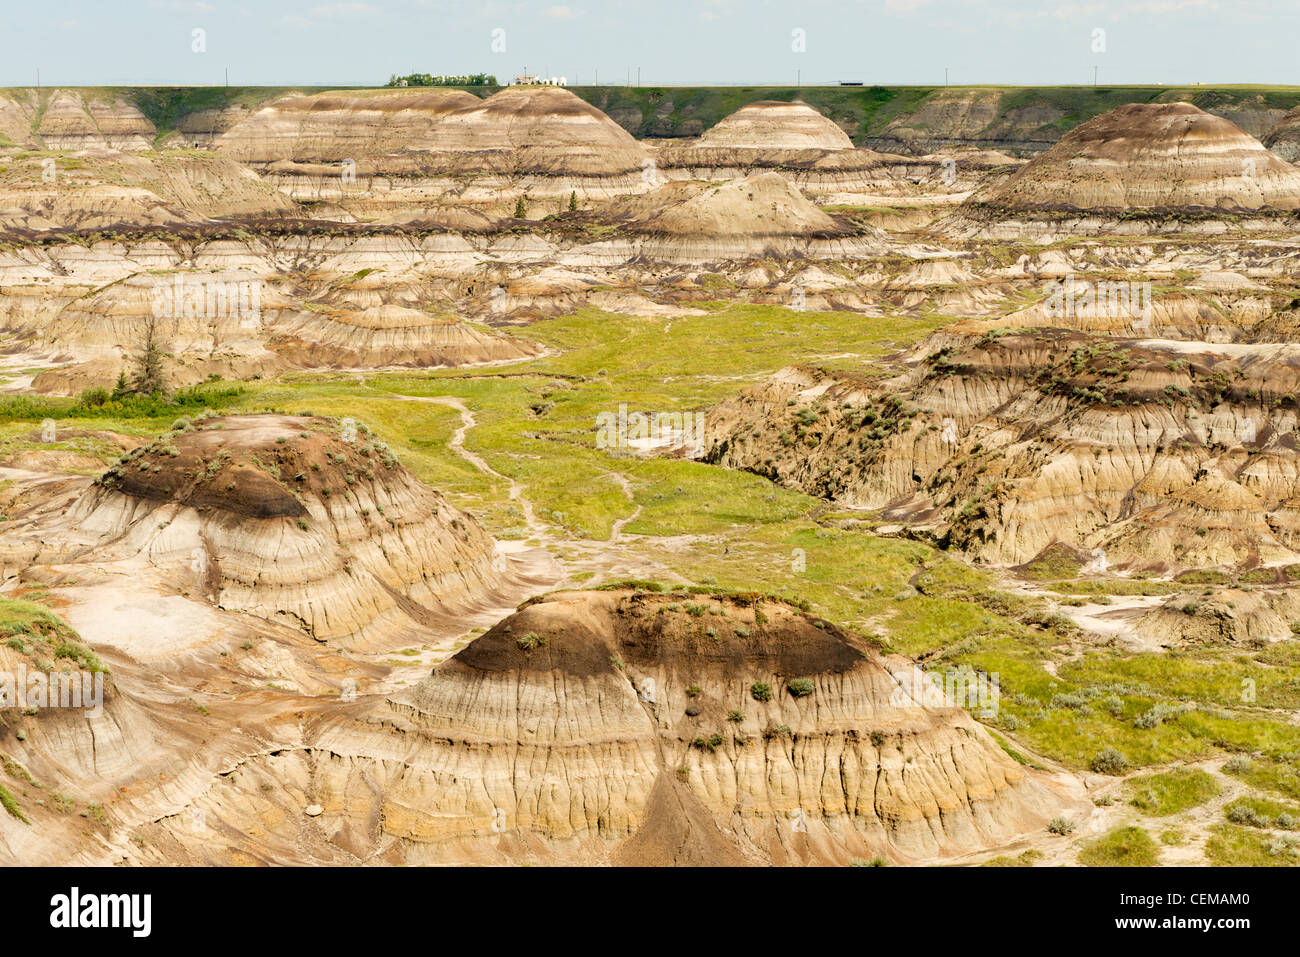 Horseshoe Canyon, in Alberta Badlands, vicino Drumheller, Alberta, Canada Immagini Stock